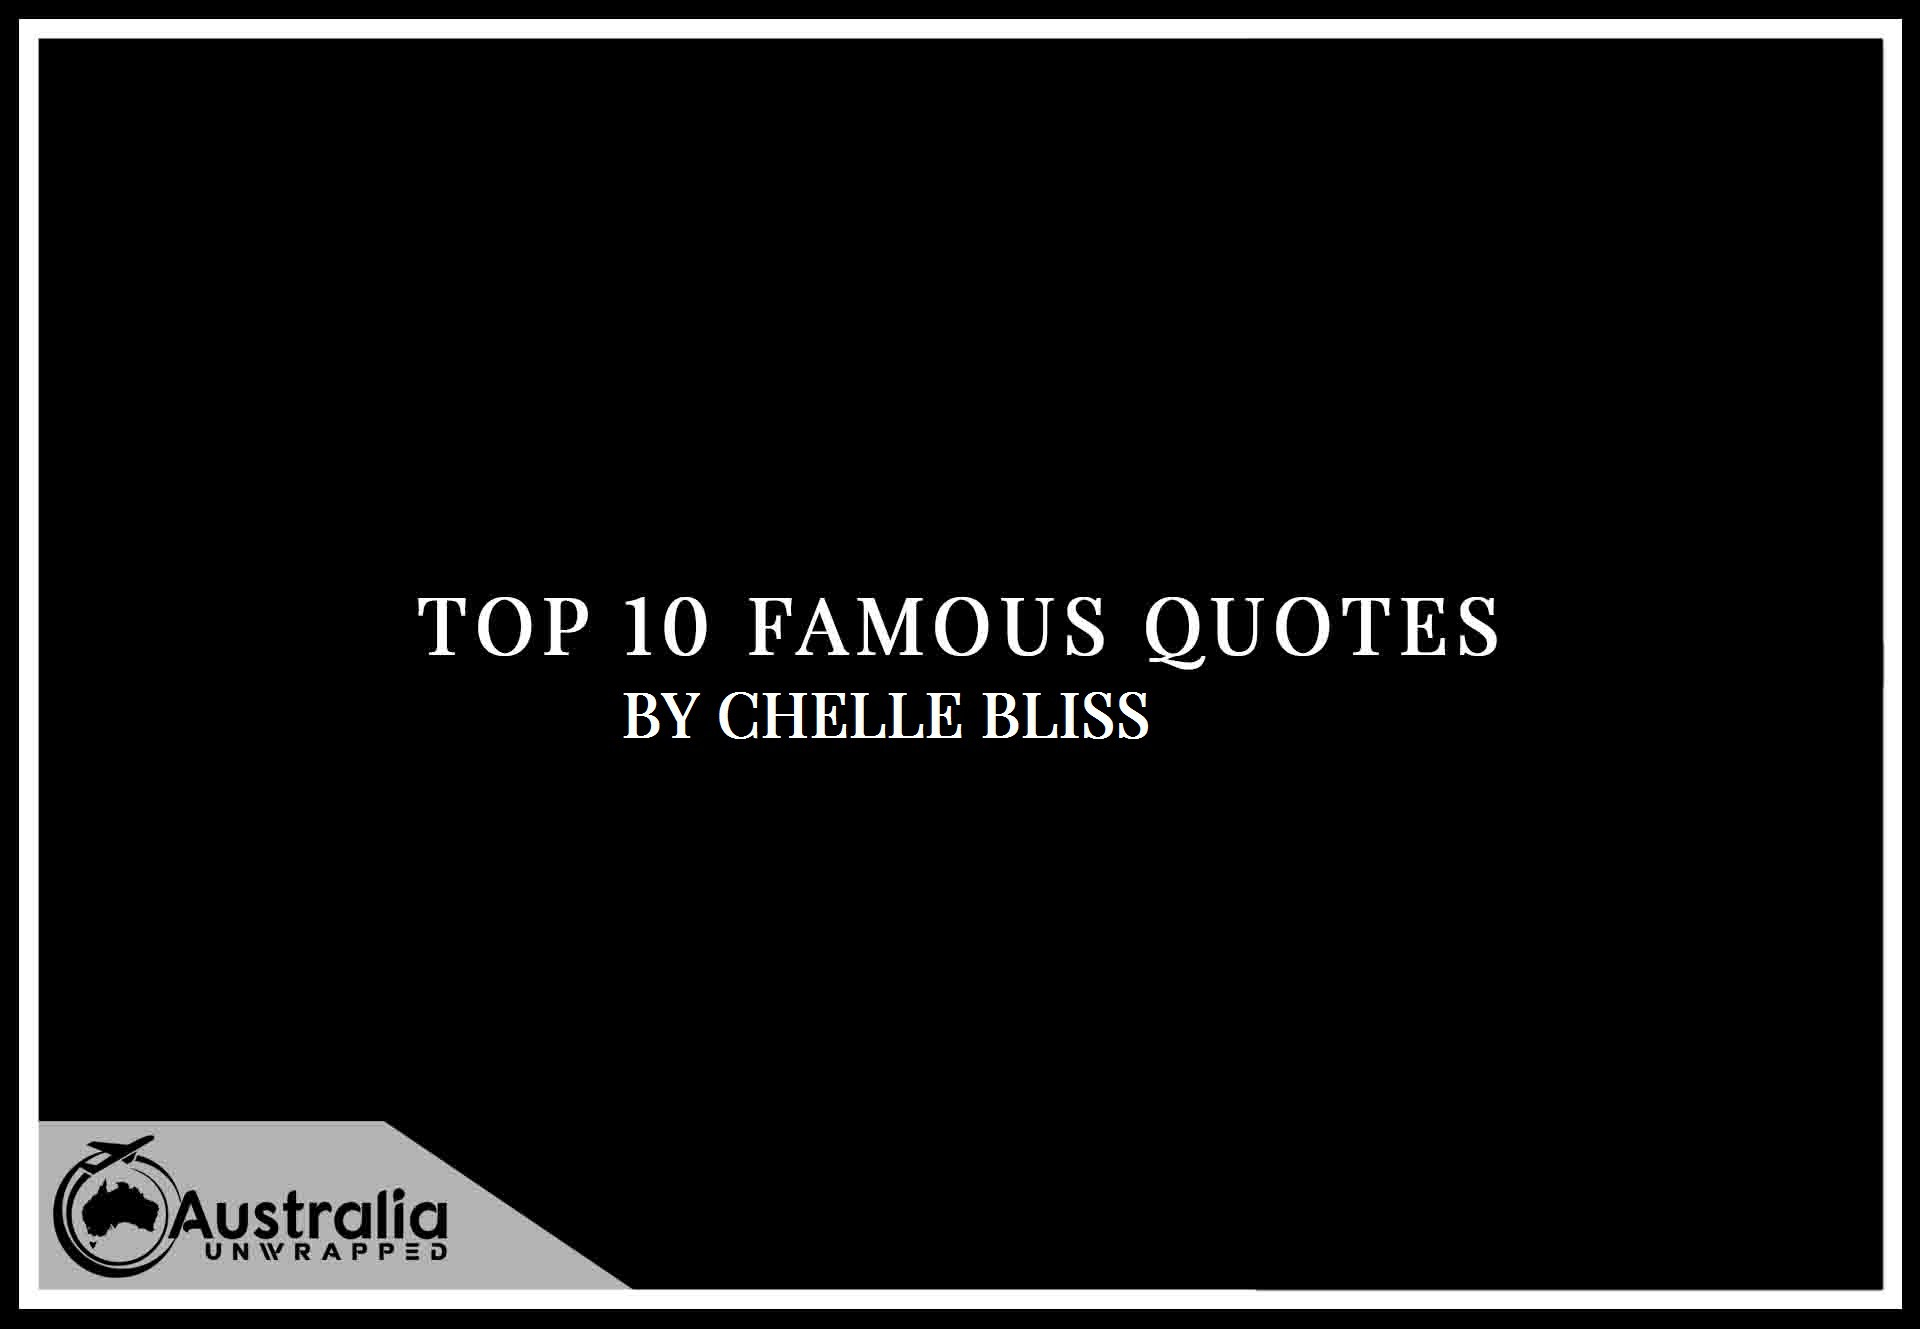 Chelle Bliss's Top 10 Popular and Famous Quotes